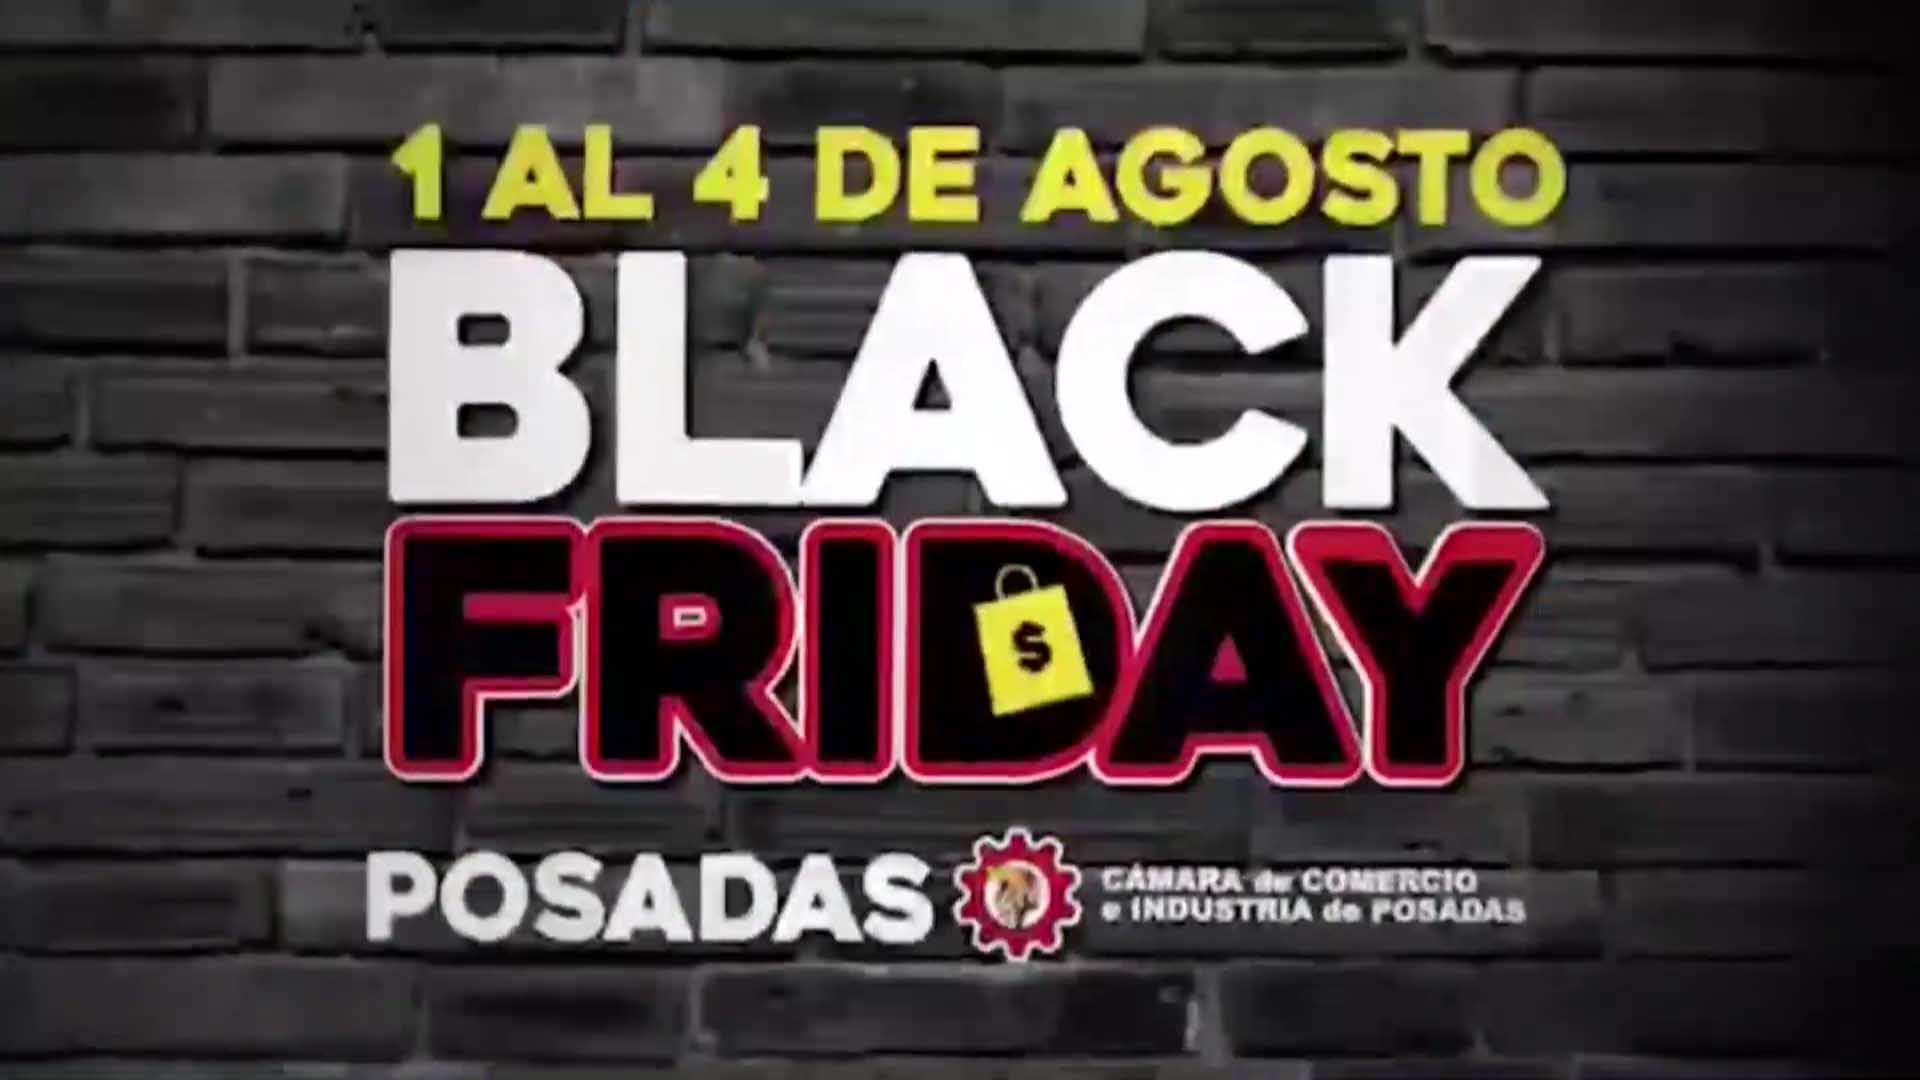 Black Friday Posadas: el IPLyC propone shows de artistas locales